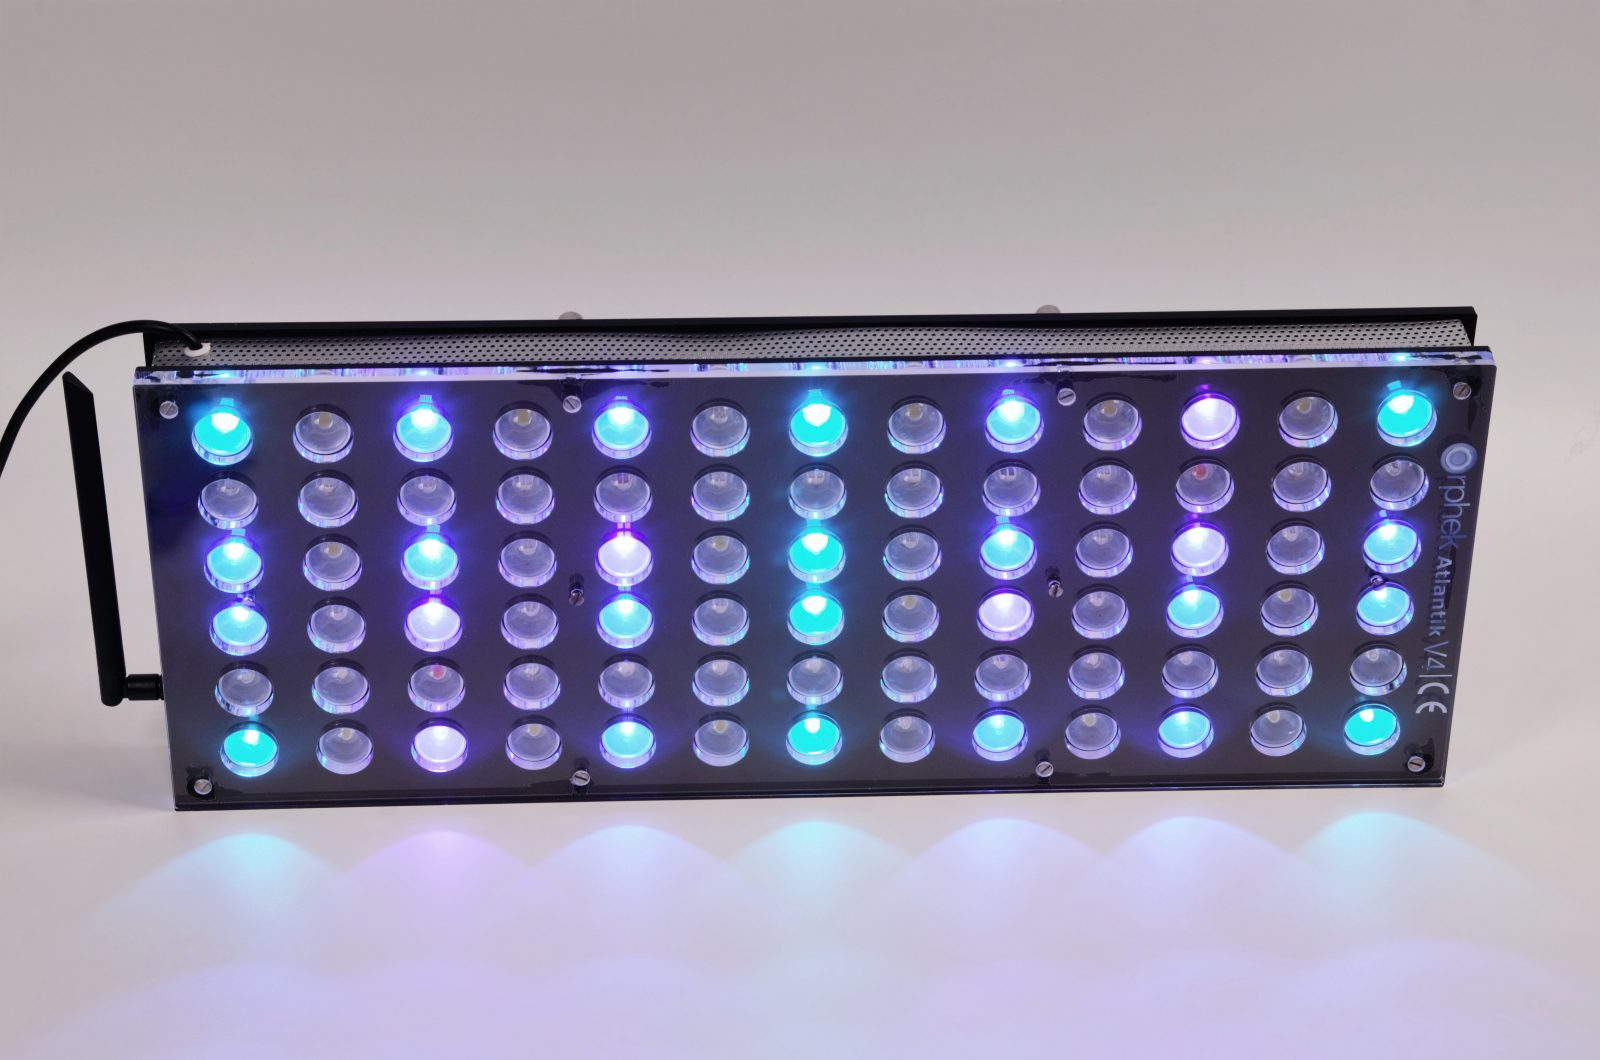 Orphek-Aquarium-LED-Lighting-Reef-Atlantik-V4-light-on-channel 2